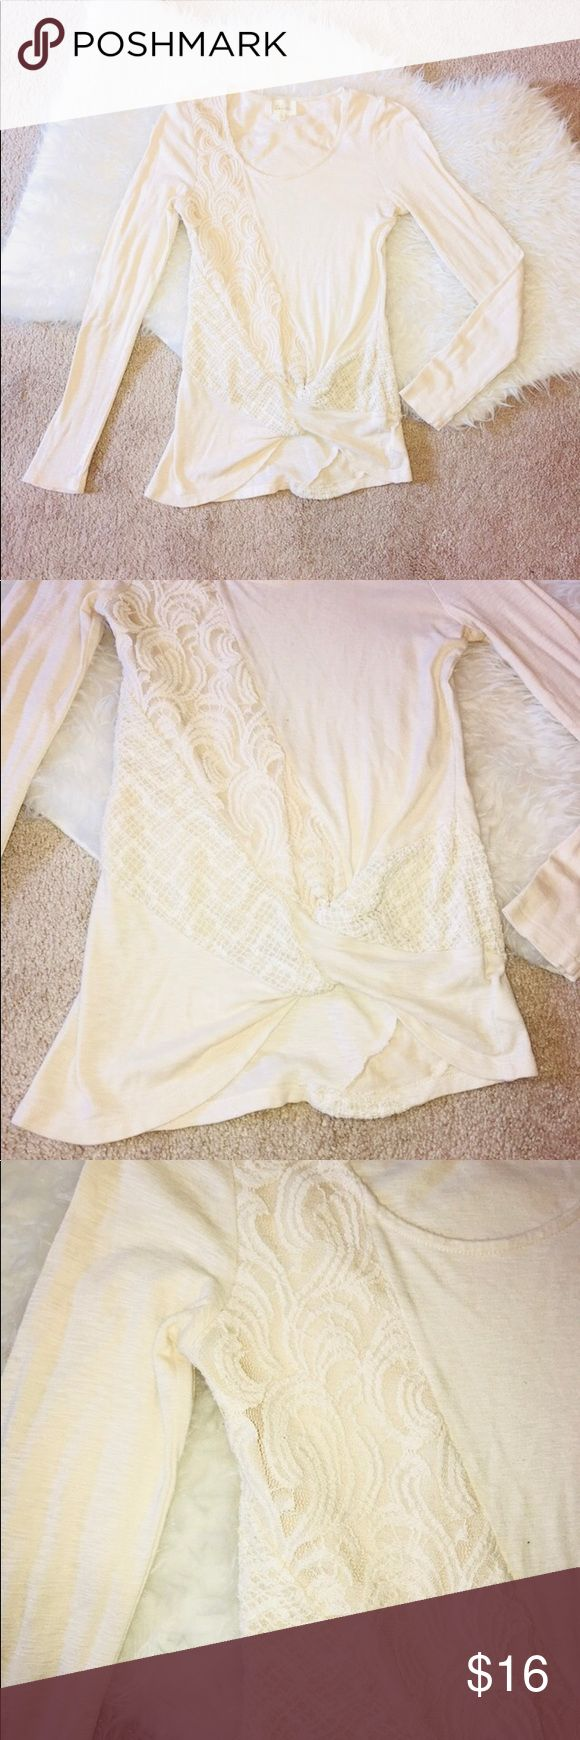 """Anthro Deletta Lace Embroidered Top Anthropologie Deletta Brand Cream Long Sleeve Top. XS. Crew neck with lace embroidery on front and back. Gathered """"knotted"""" front. Anthropologie Tops Blouses"""